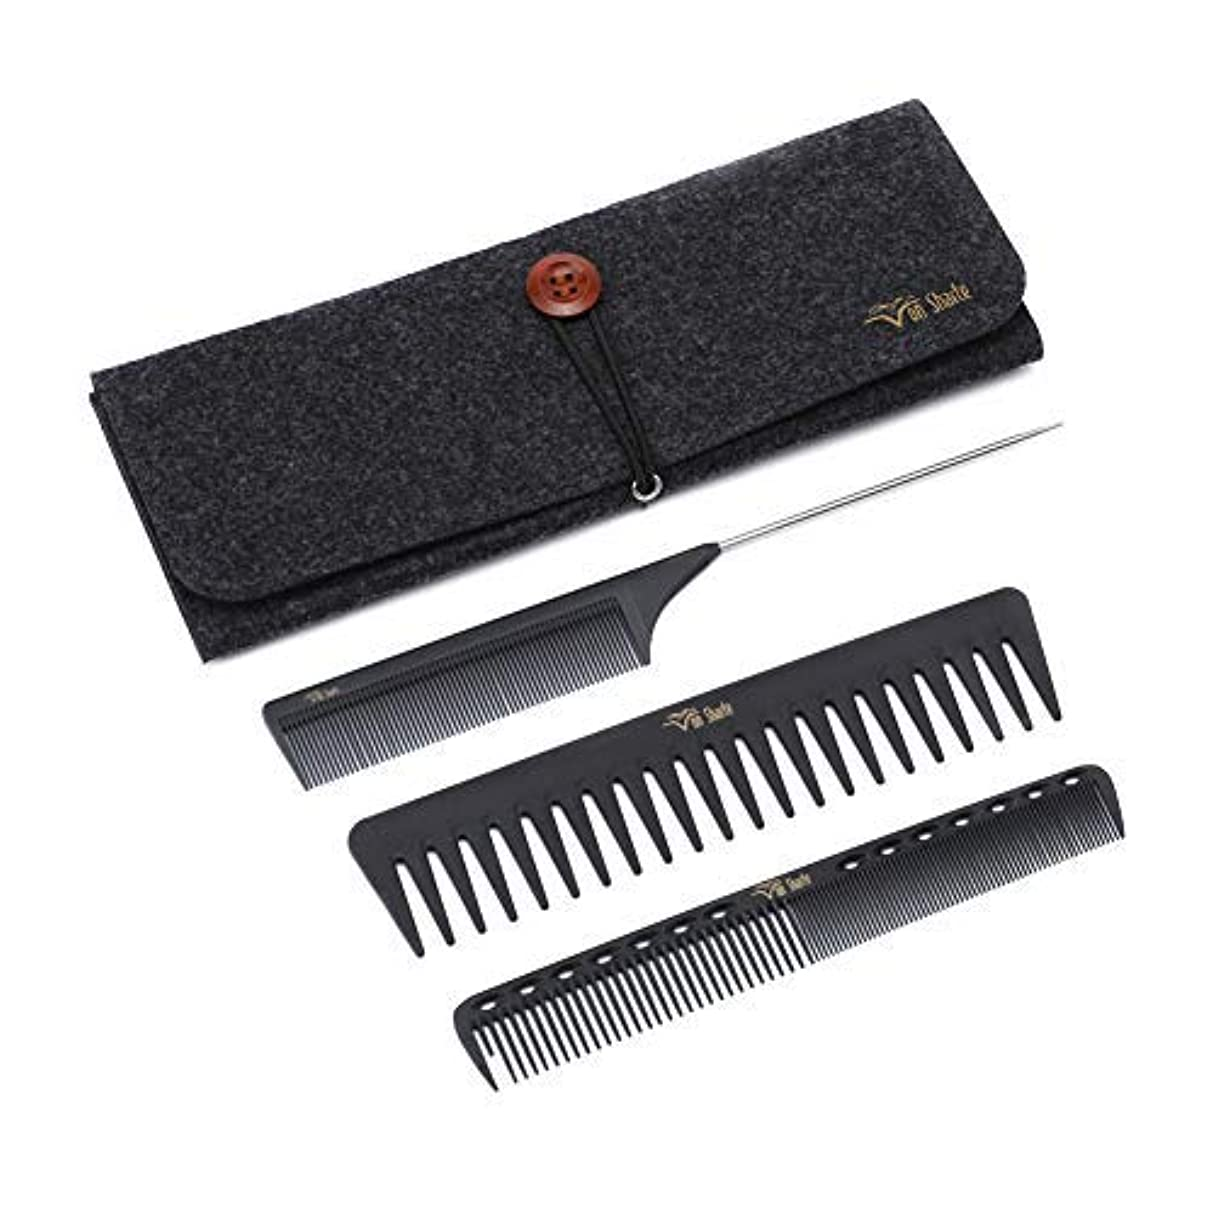 平衡ブラスト滑るStyling Comb Set,Hairdresser Barber Comb Cutting Hair Comb Carbon Fiber Wide Tooth Comb Metal Rat Pin Tail Comb...